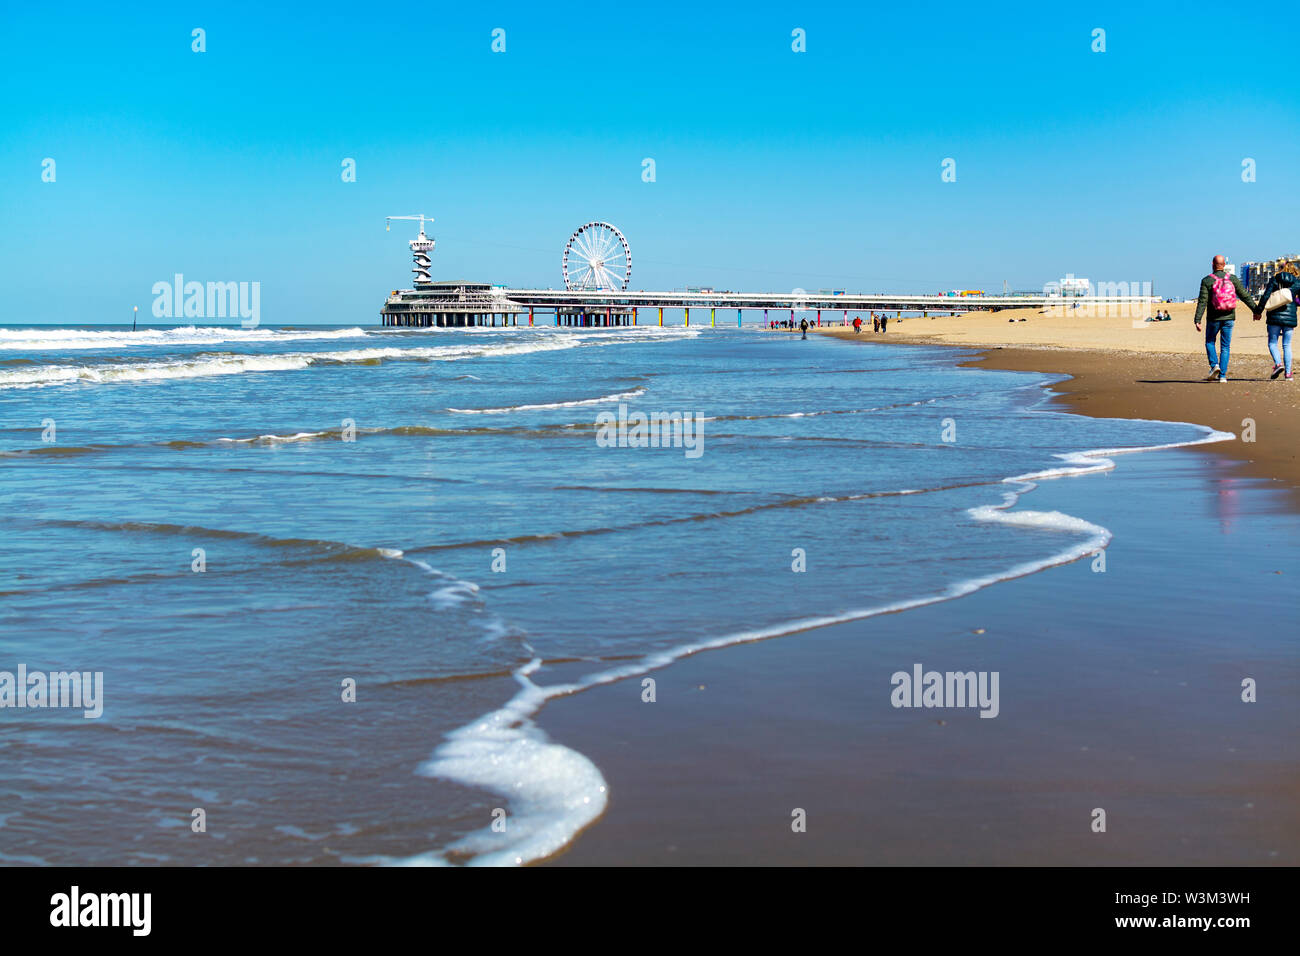 People walking in sunny day on North sea beach in Netherlands near Scheveningen, tourist and vacation destination in Europe - Stock Image